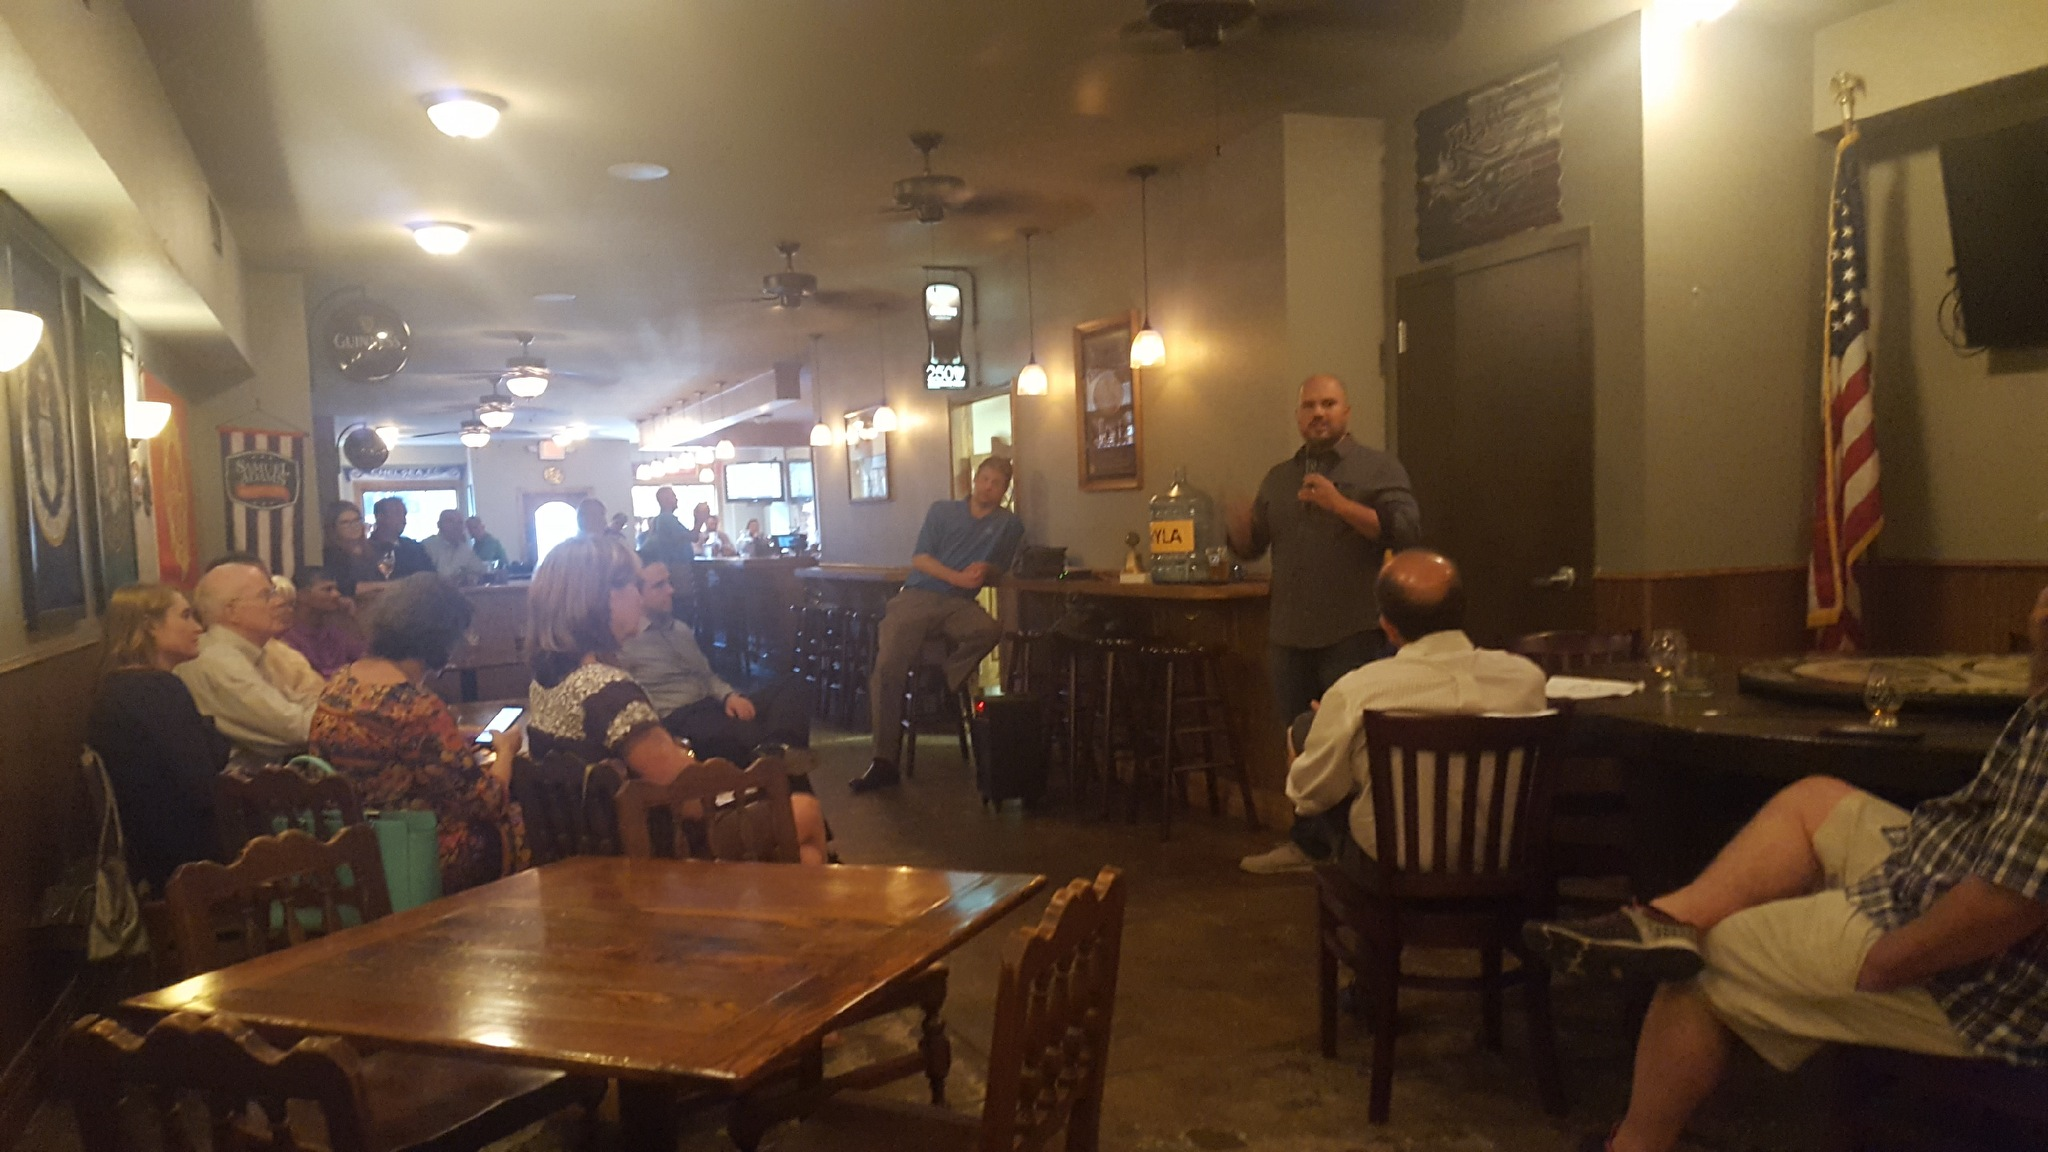 Speaking to the Lake Brazos Rotary Club on September 6, 2017, at Barnett's Pub